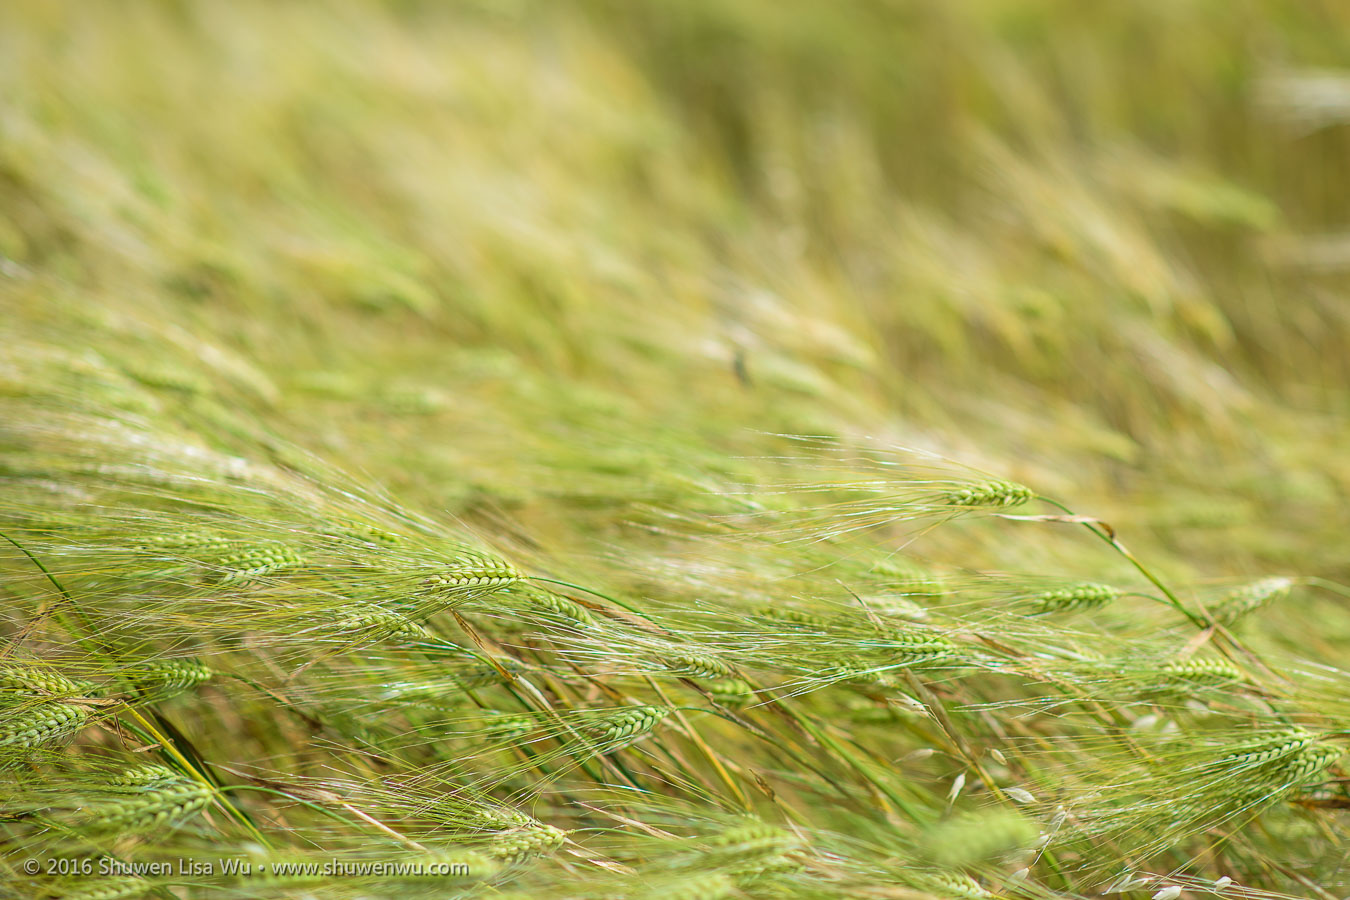 Close-up of wheat swaying in the wind, along Vineyard Road, Paso Robles, California, April 2016.